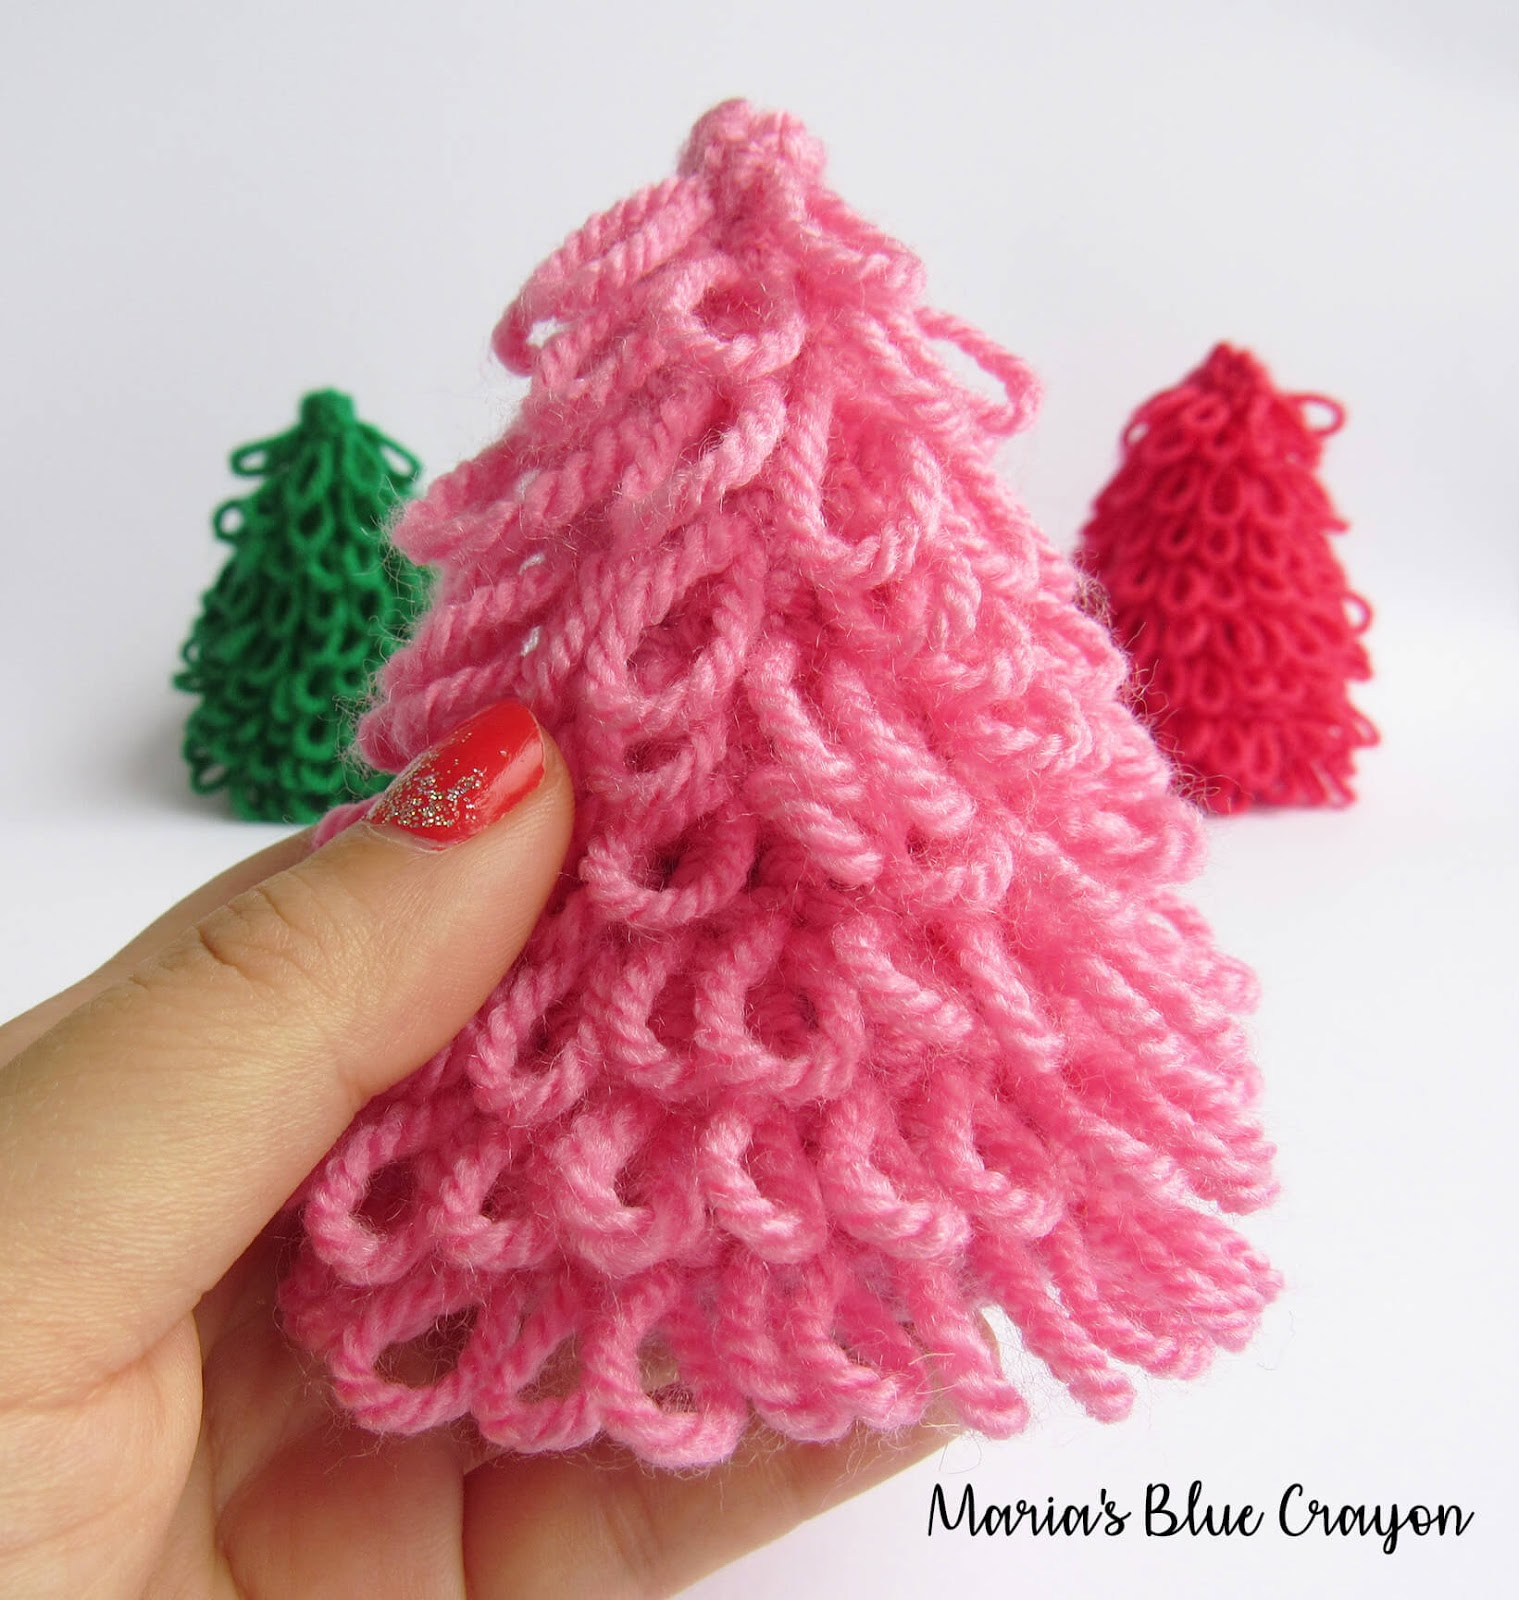 Free Knitted Christmas Tree Decorations Patterns Crochet Mini Christmas Tree For Decoration Free Crochet Pattern